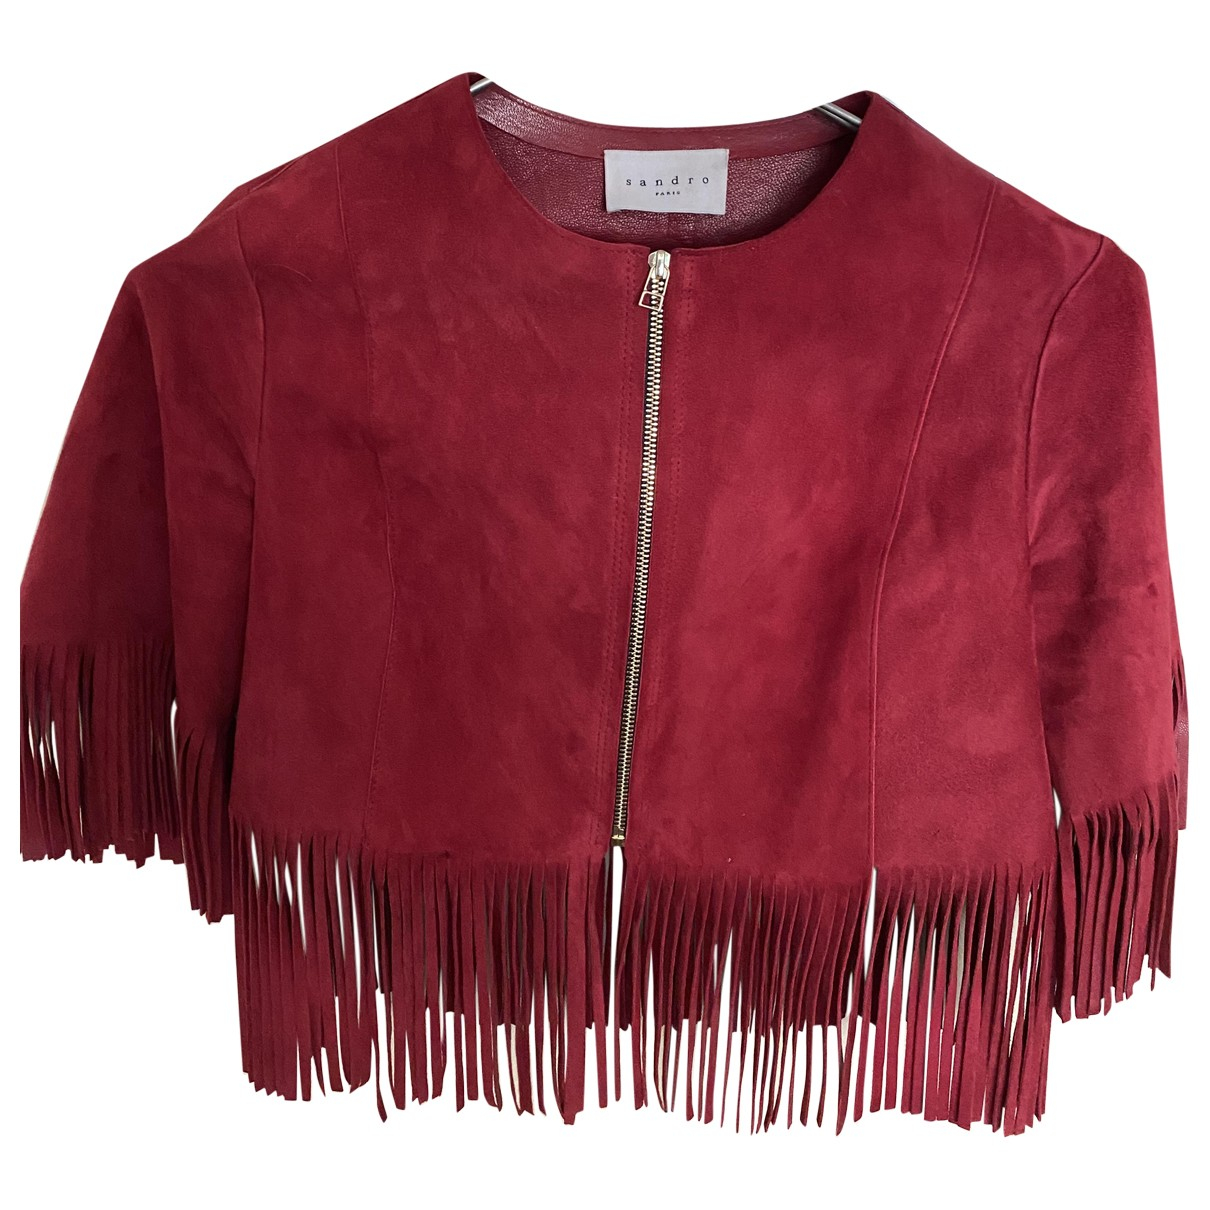 Sandro N Red Leather jacket for Women S International